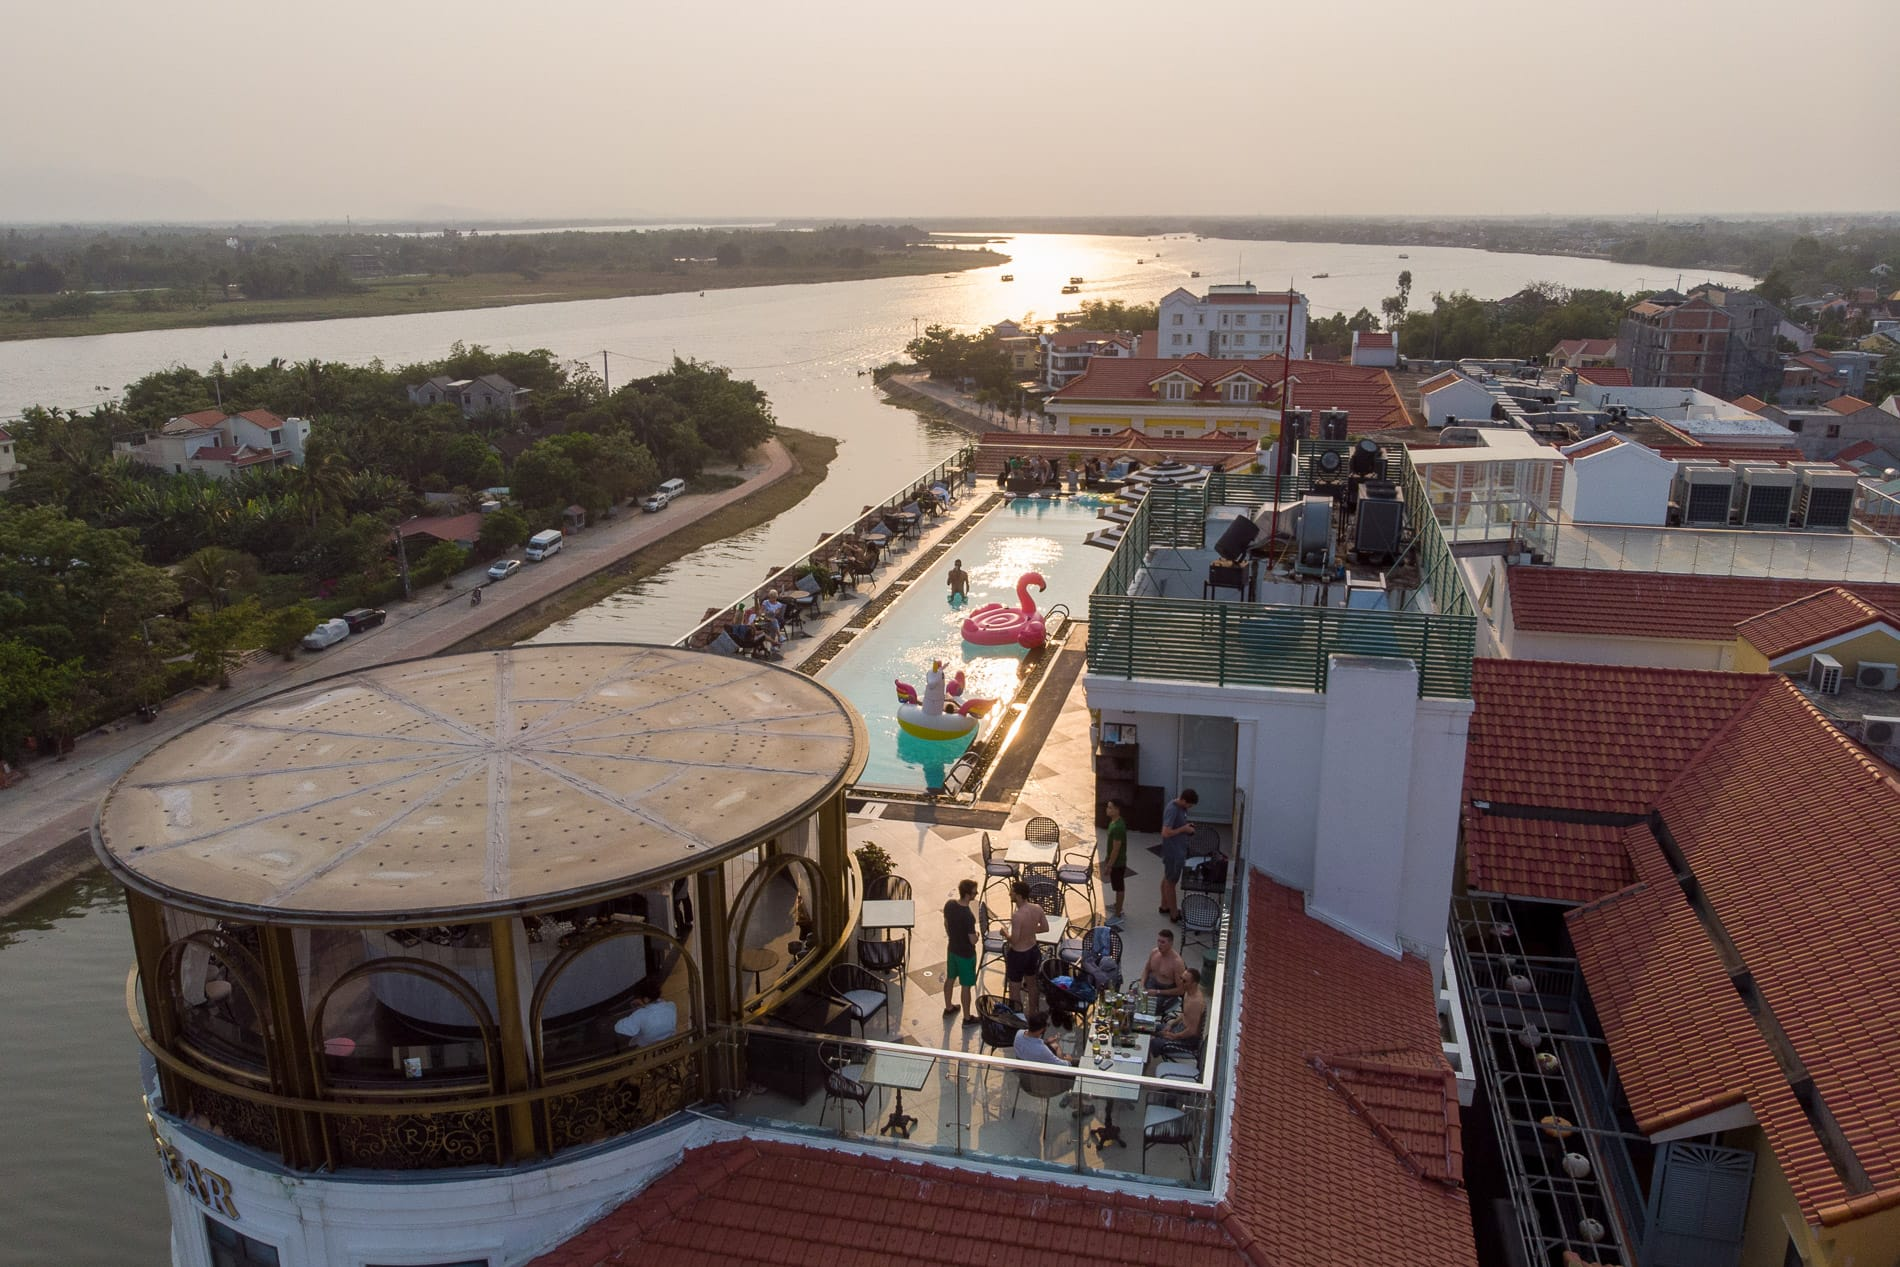 Drone view of The Deck bar